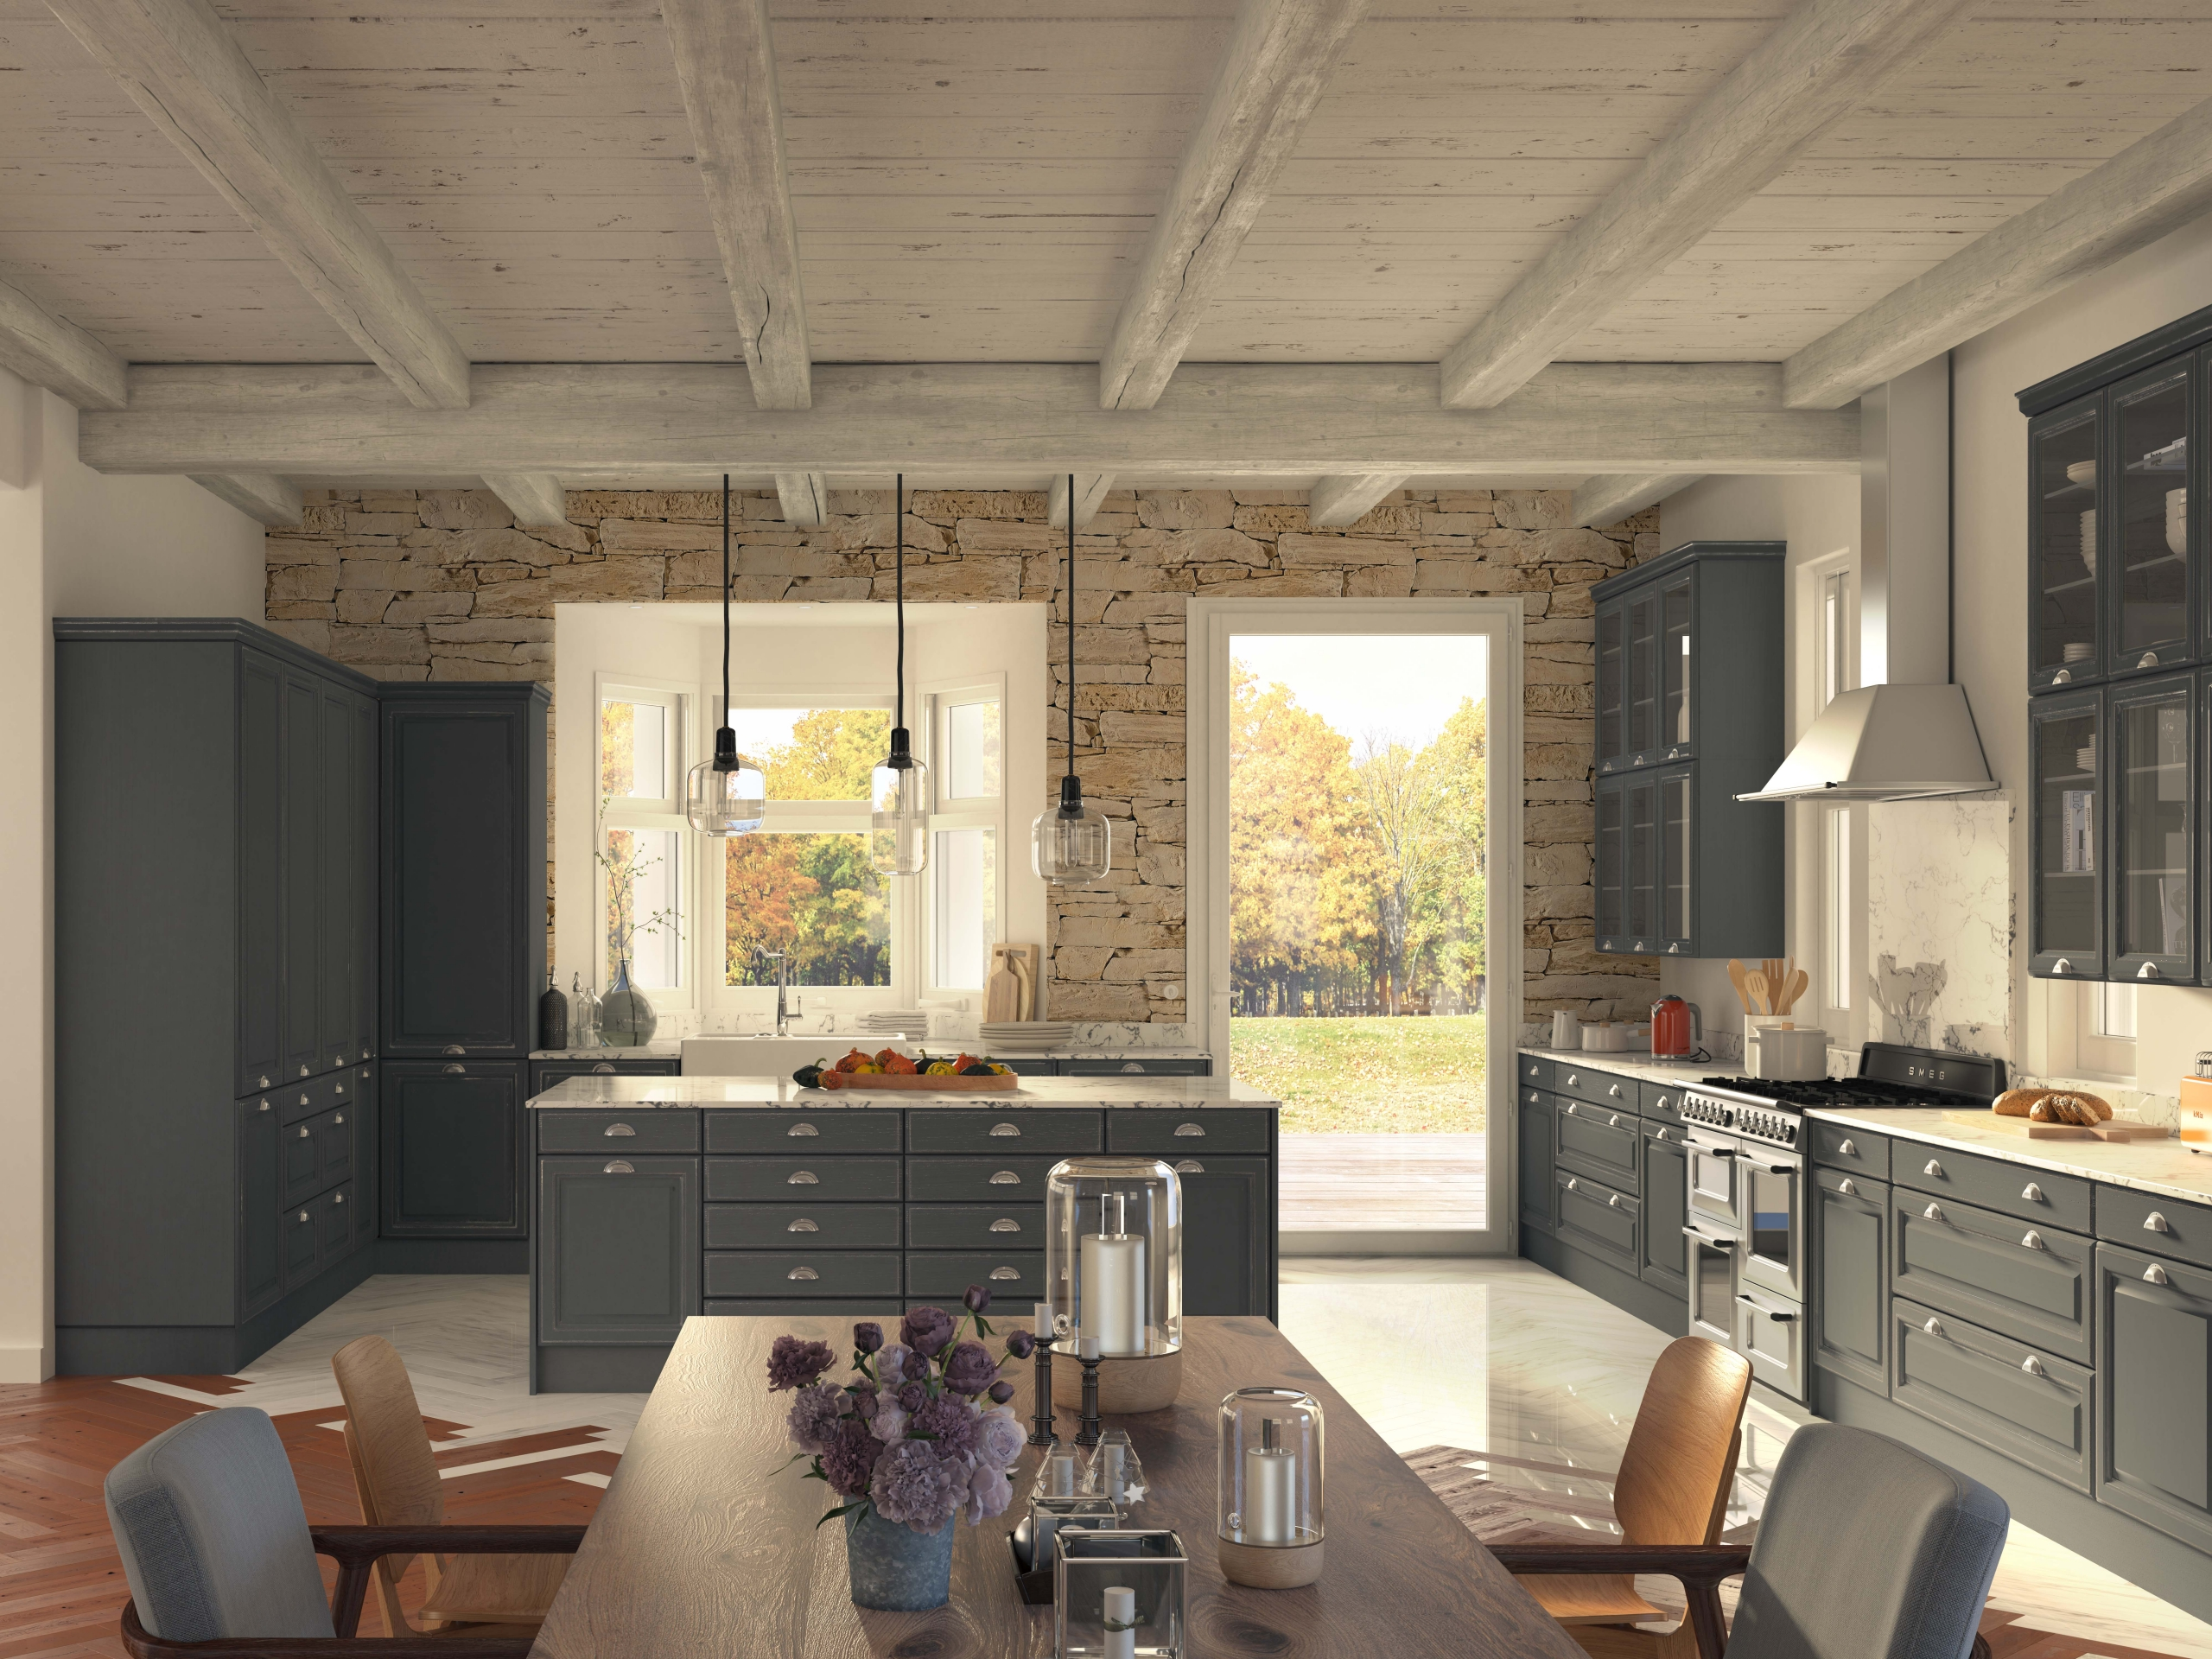 cuisine-moderne-campagne-chic-lodge